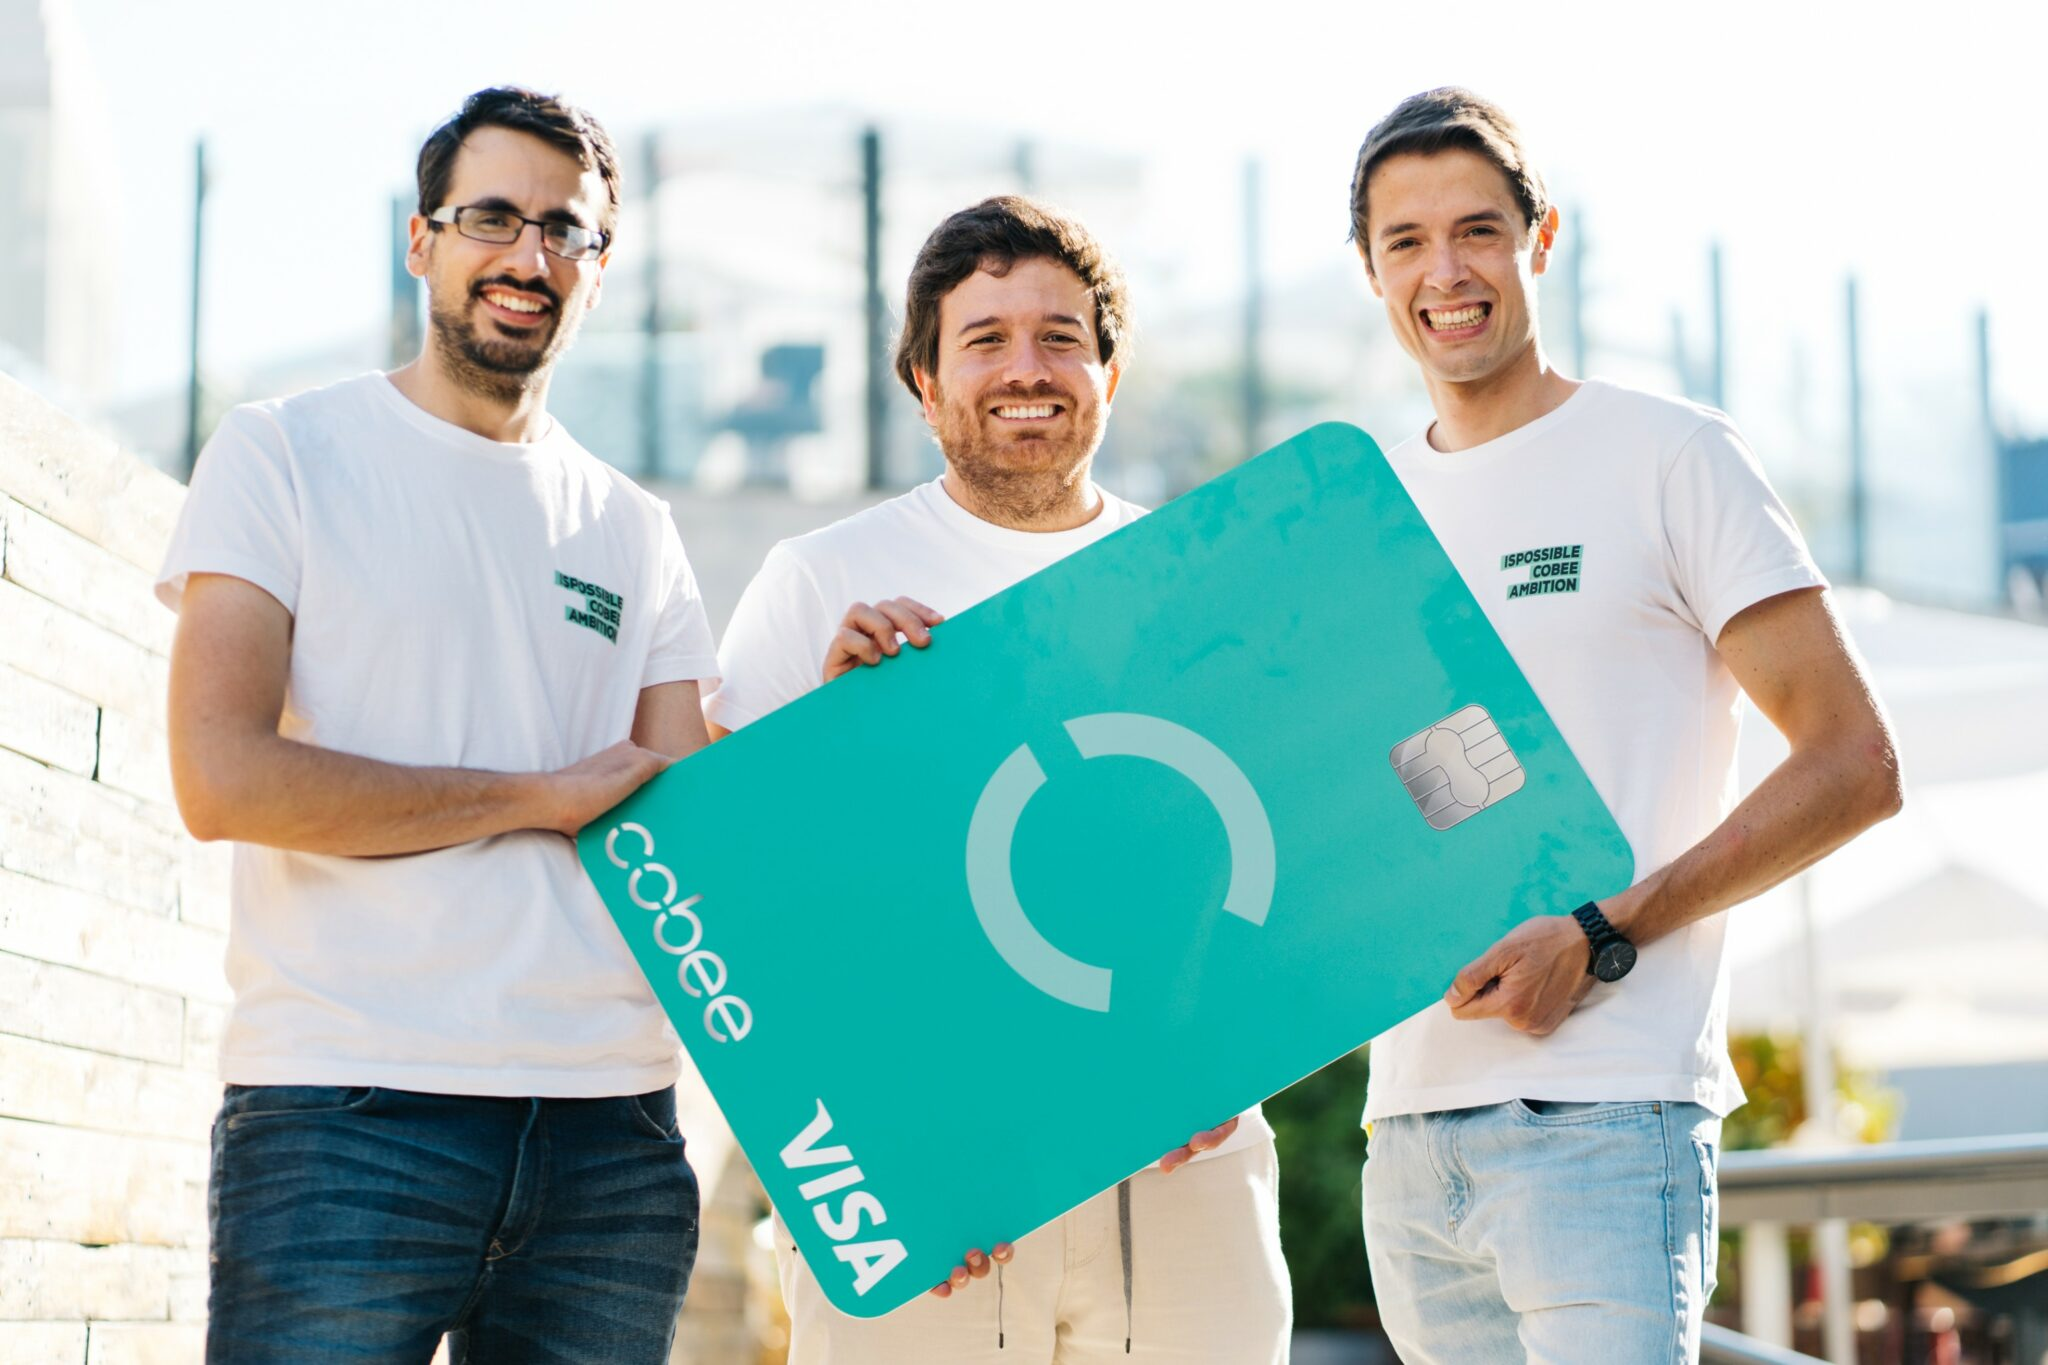 Madrid-based Cobee raises €14 million to double down on its mission to improve access to employee benefits